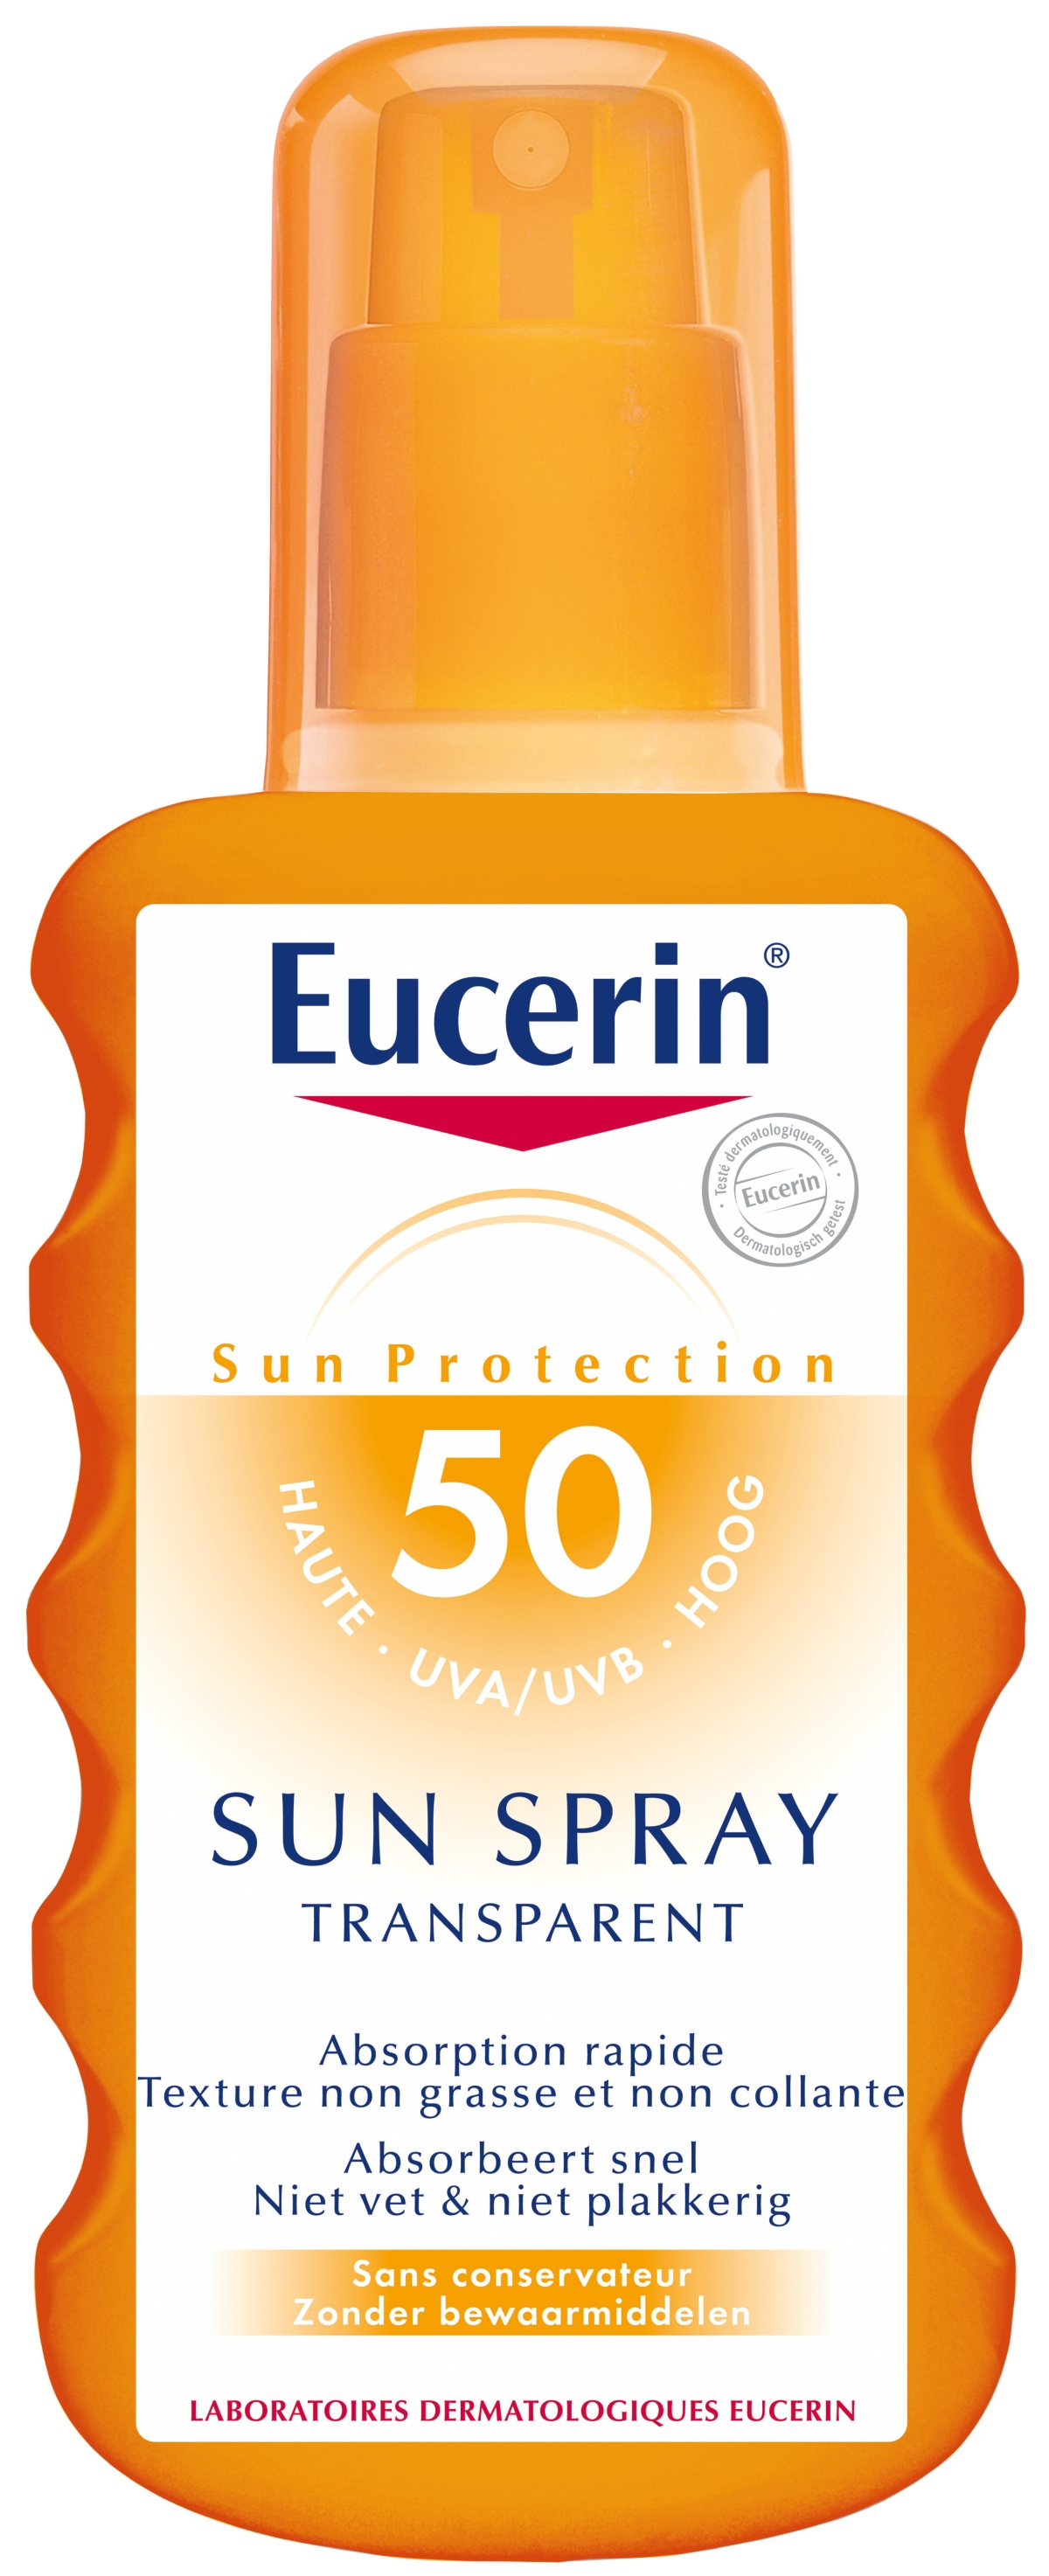 http://bioutibox.files.wordpress.com/2011/02/eucerin_sun-spray-transparent-50.jpg